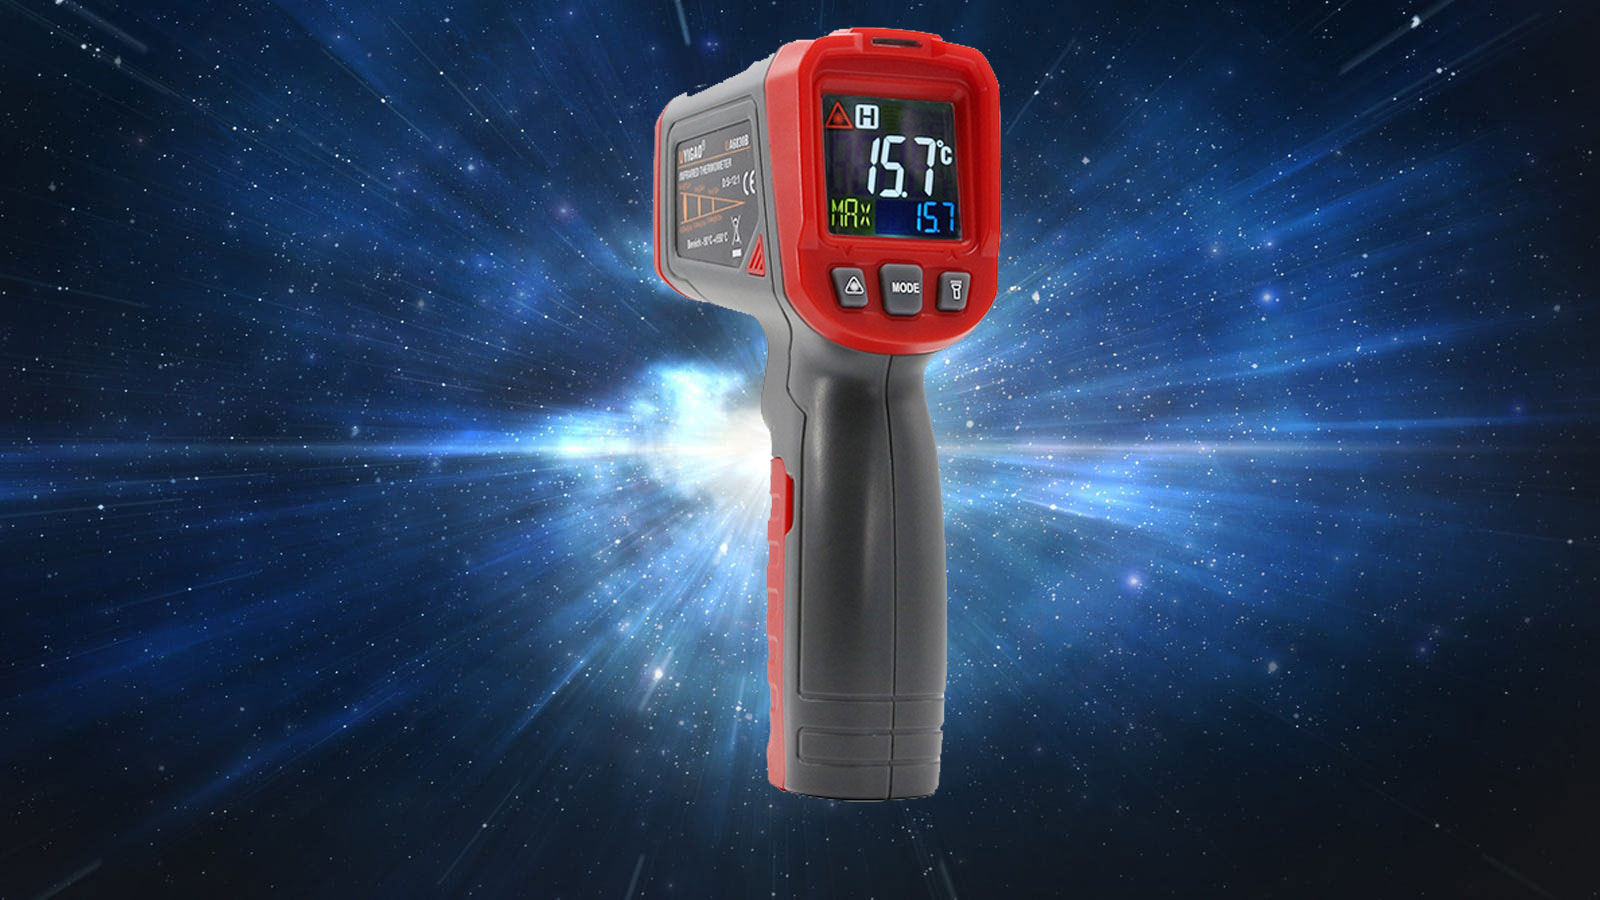 6830B infrared thermometer